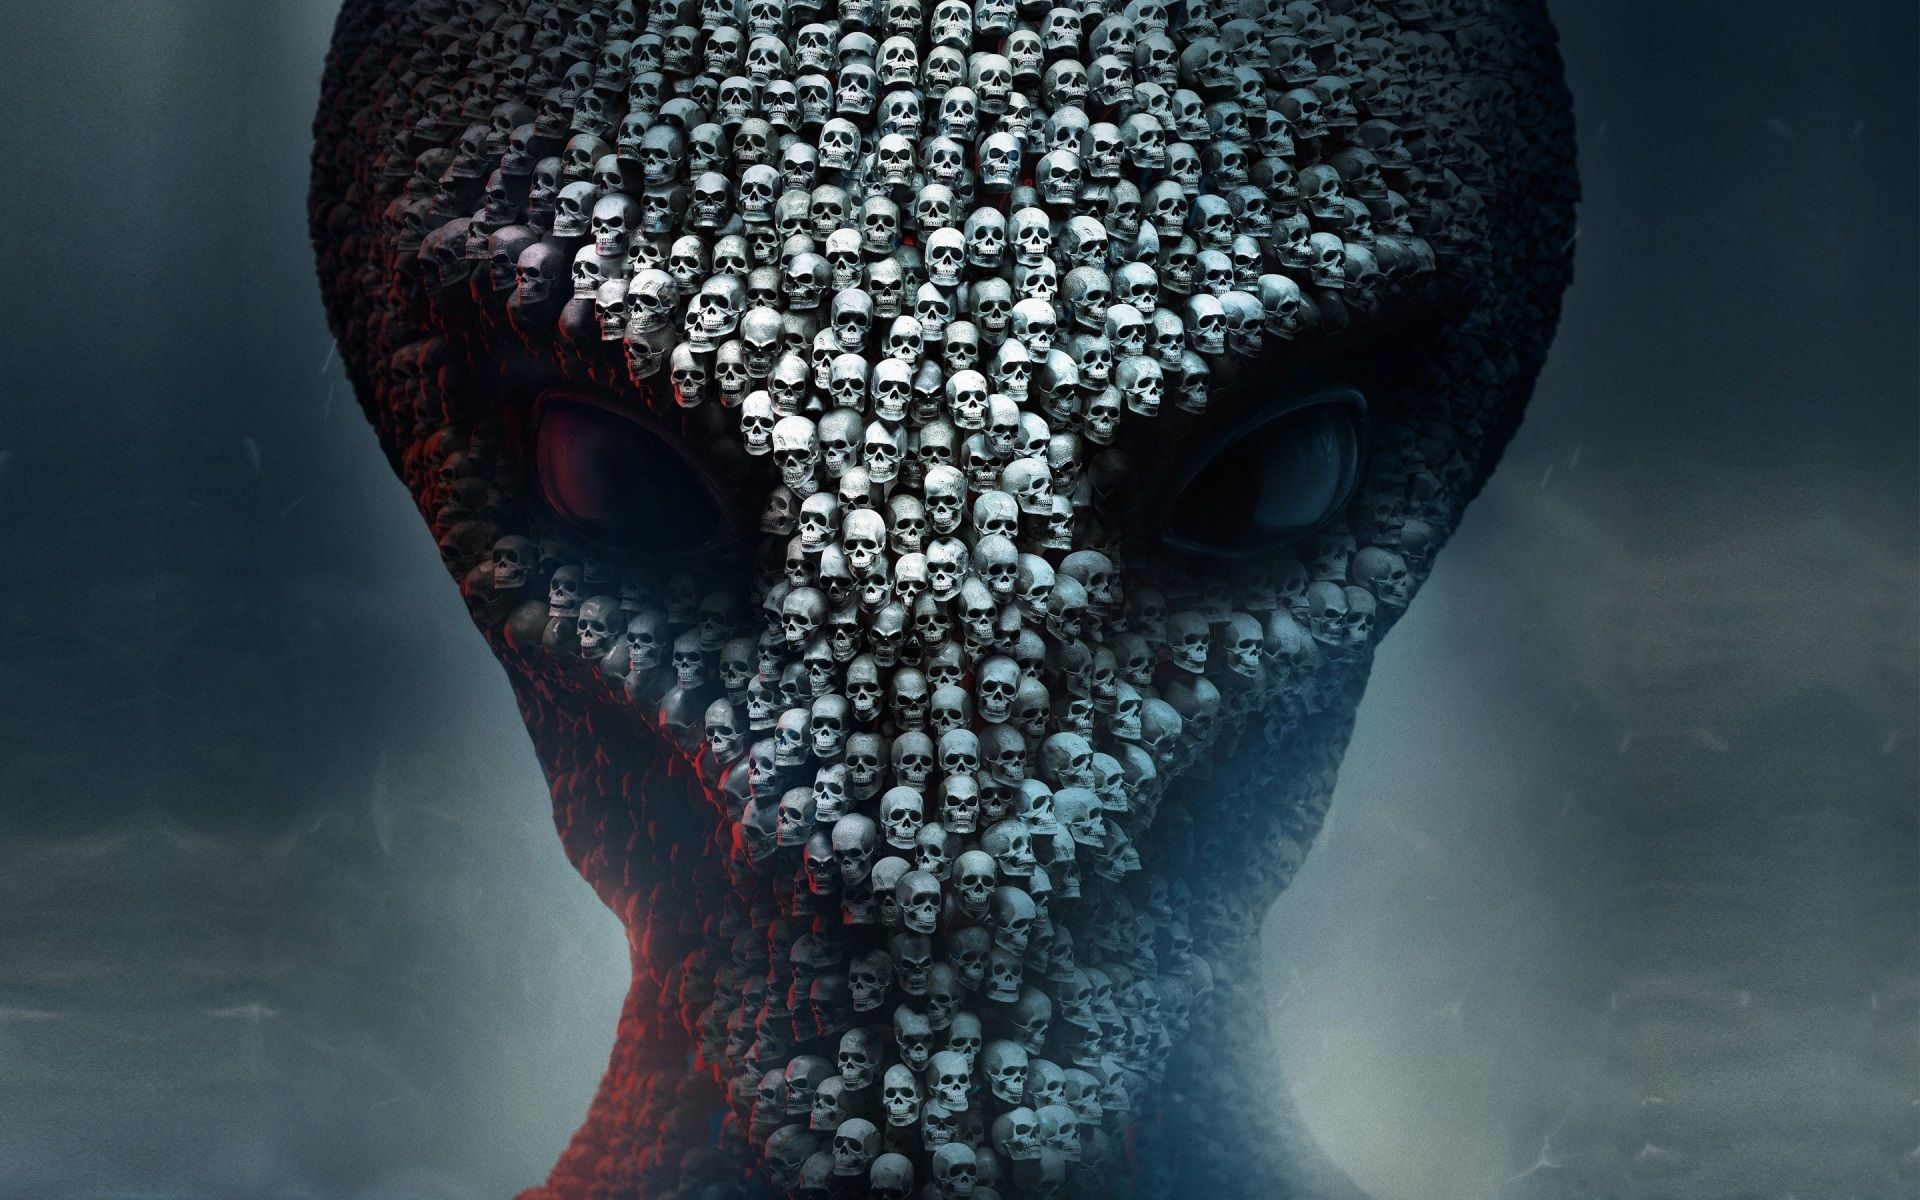 1920x1200 xcom 2 hd wallpaper background | wallpapers and backgronds